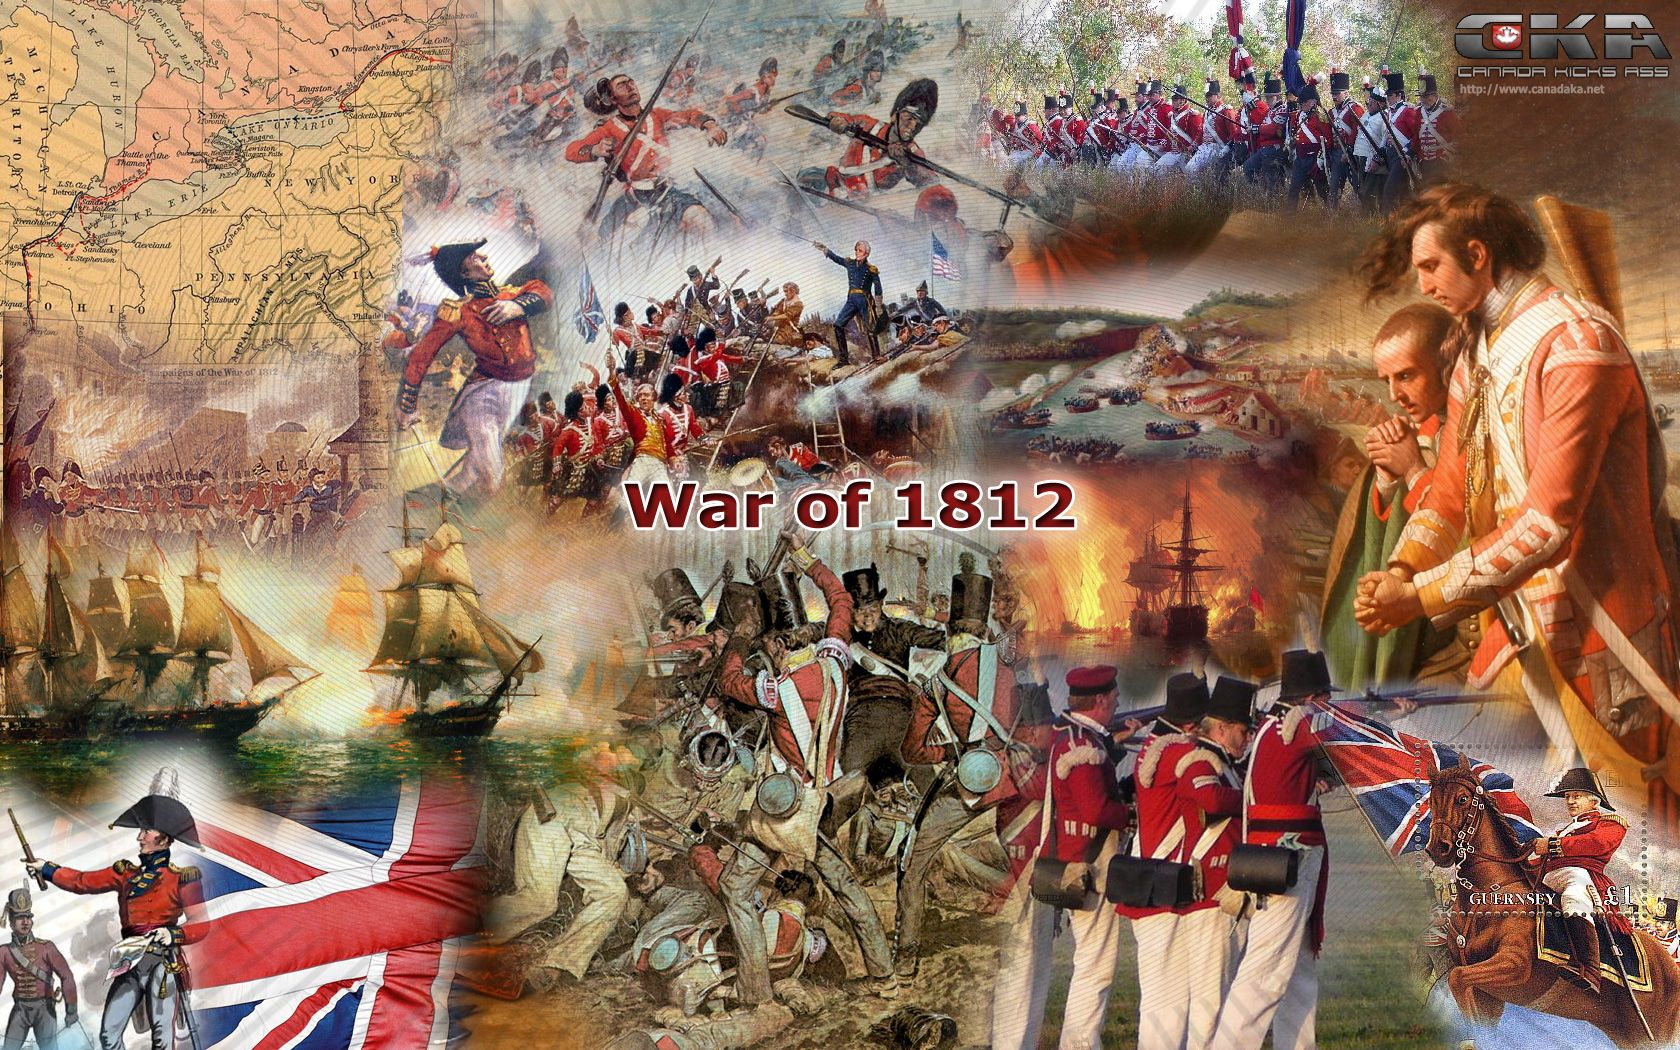 consequences of the war of 1812 essays